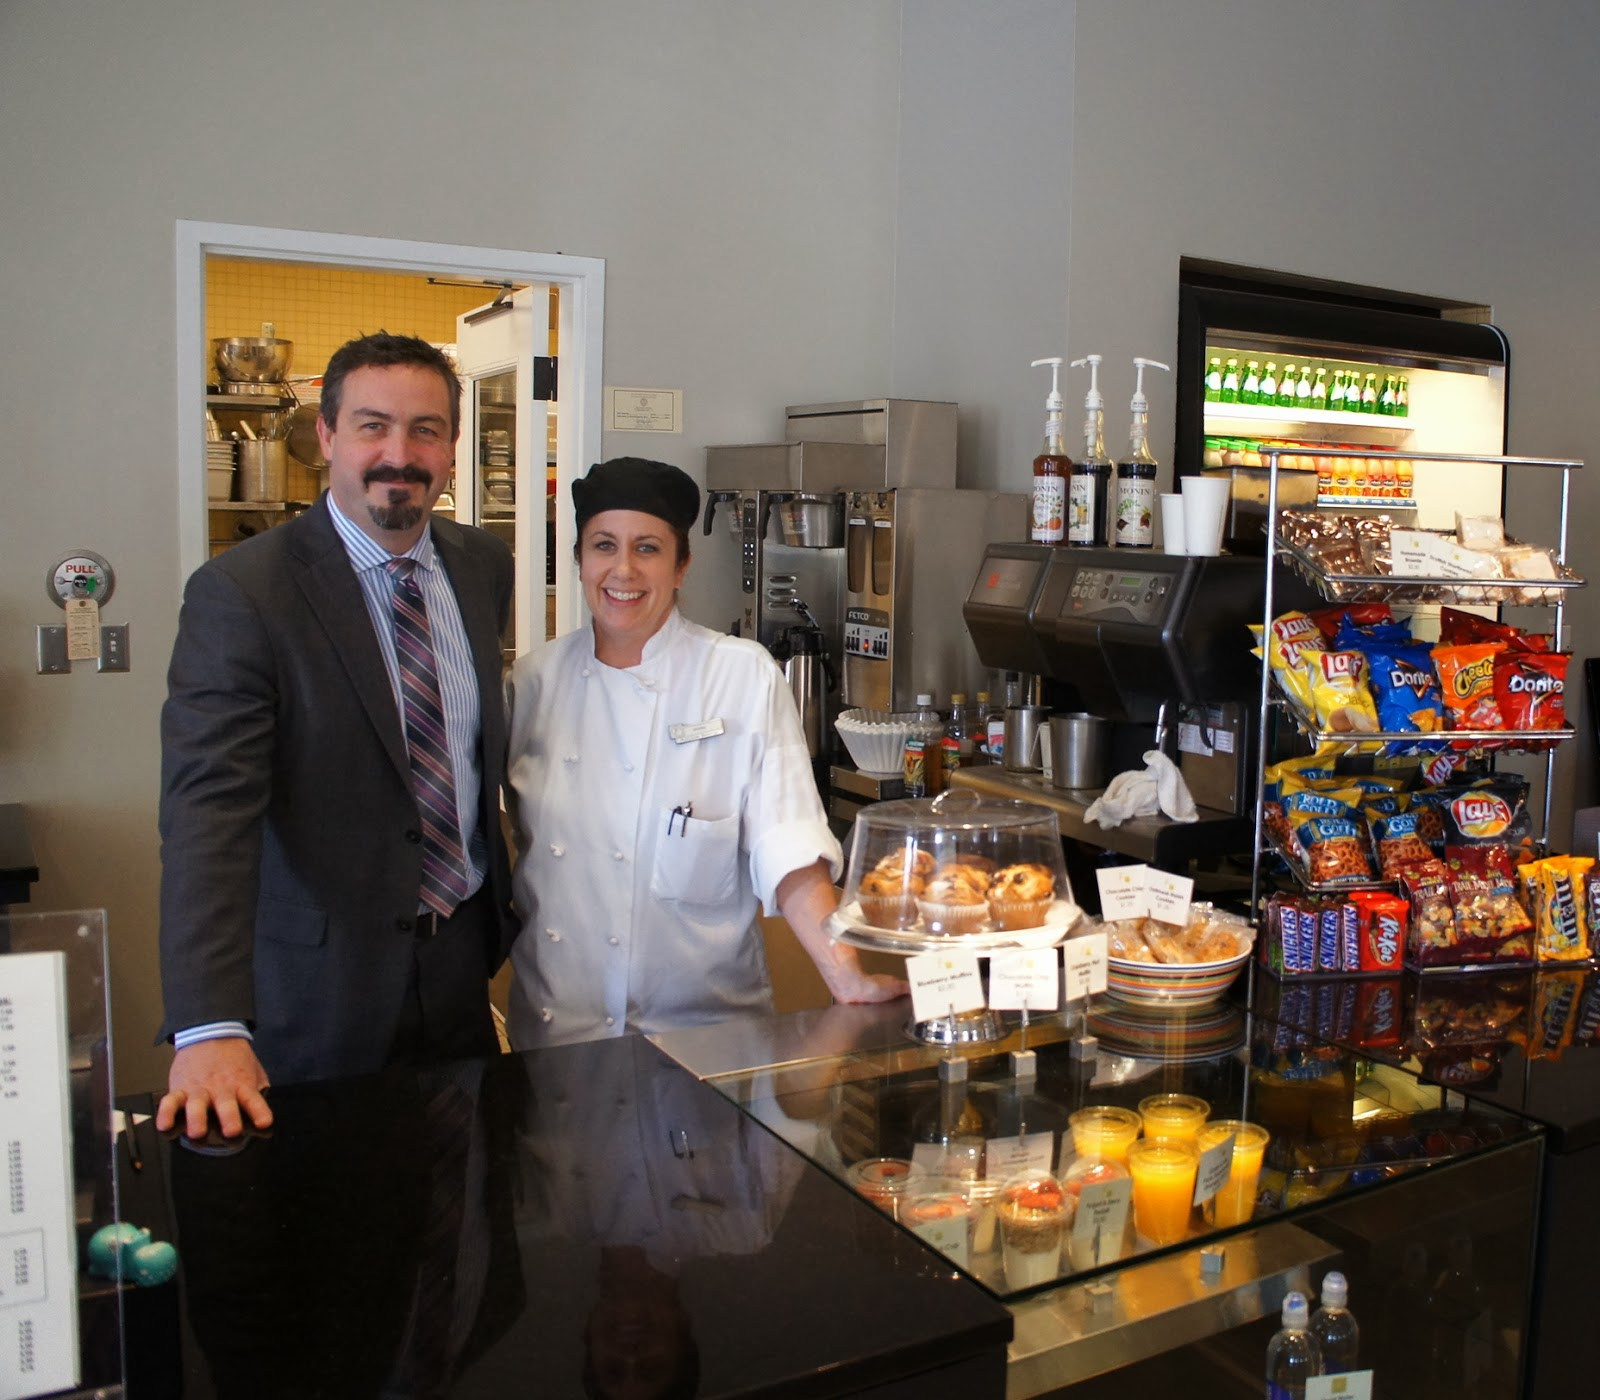 Charlie Skipsey, Director of Food and Beverage at AT&T Executive Education and Conference Center, and Jeanna Lewis, Chef Manager at the Blanton Cafe